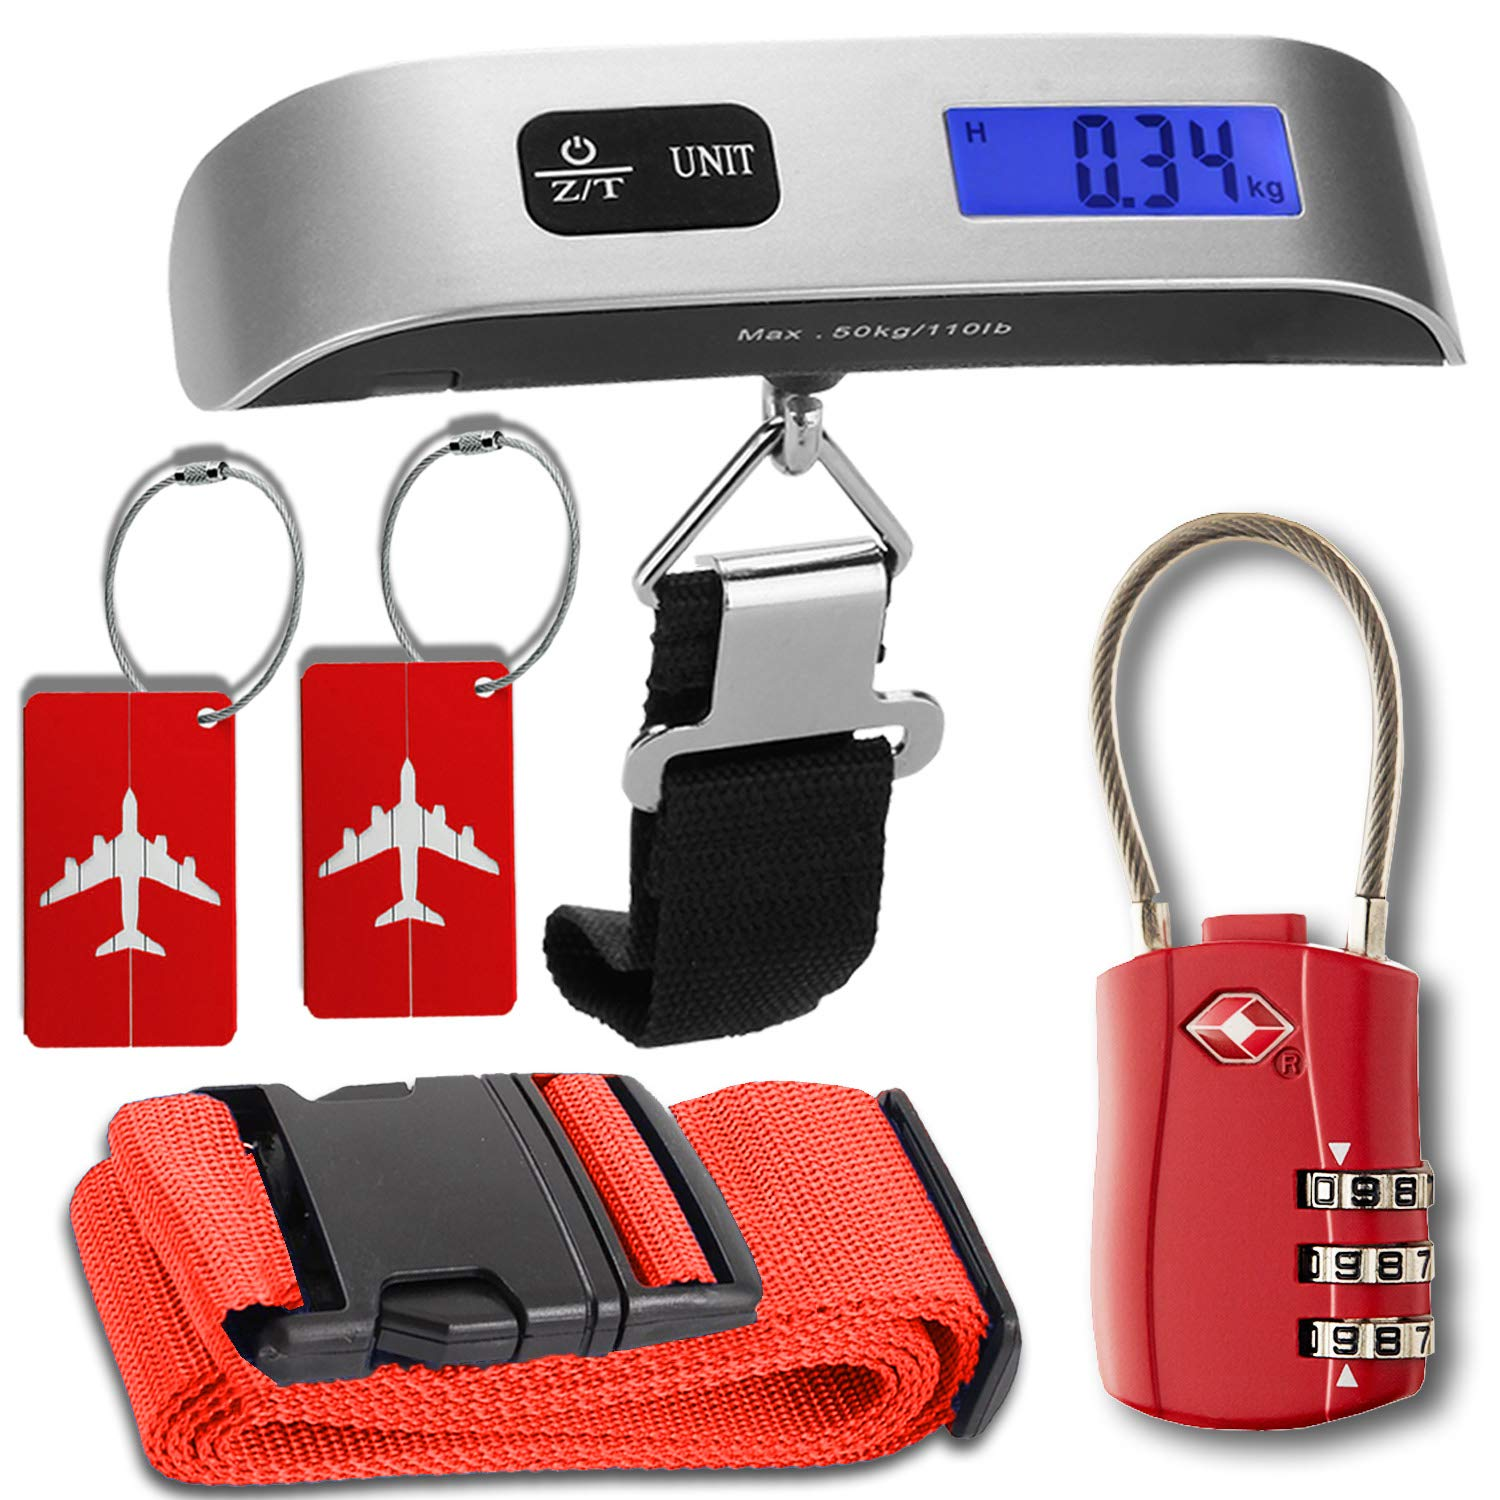 Luggage Accessories Kit, Luggage Scale with Tare Function, TSA Accepted Cable Luggage Lock, Luggage Tags, Bag Travel ID Labels for Baggage Suitcases, Luggage Straps Suitcase Belts, Gift for Traveler HeroFiber